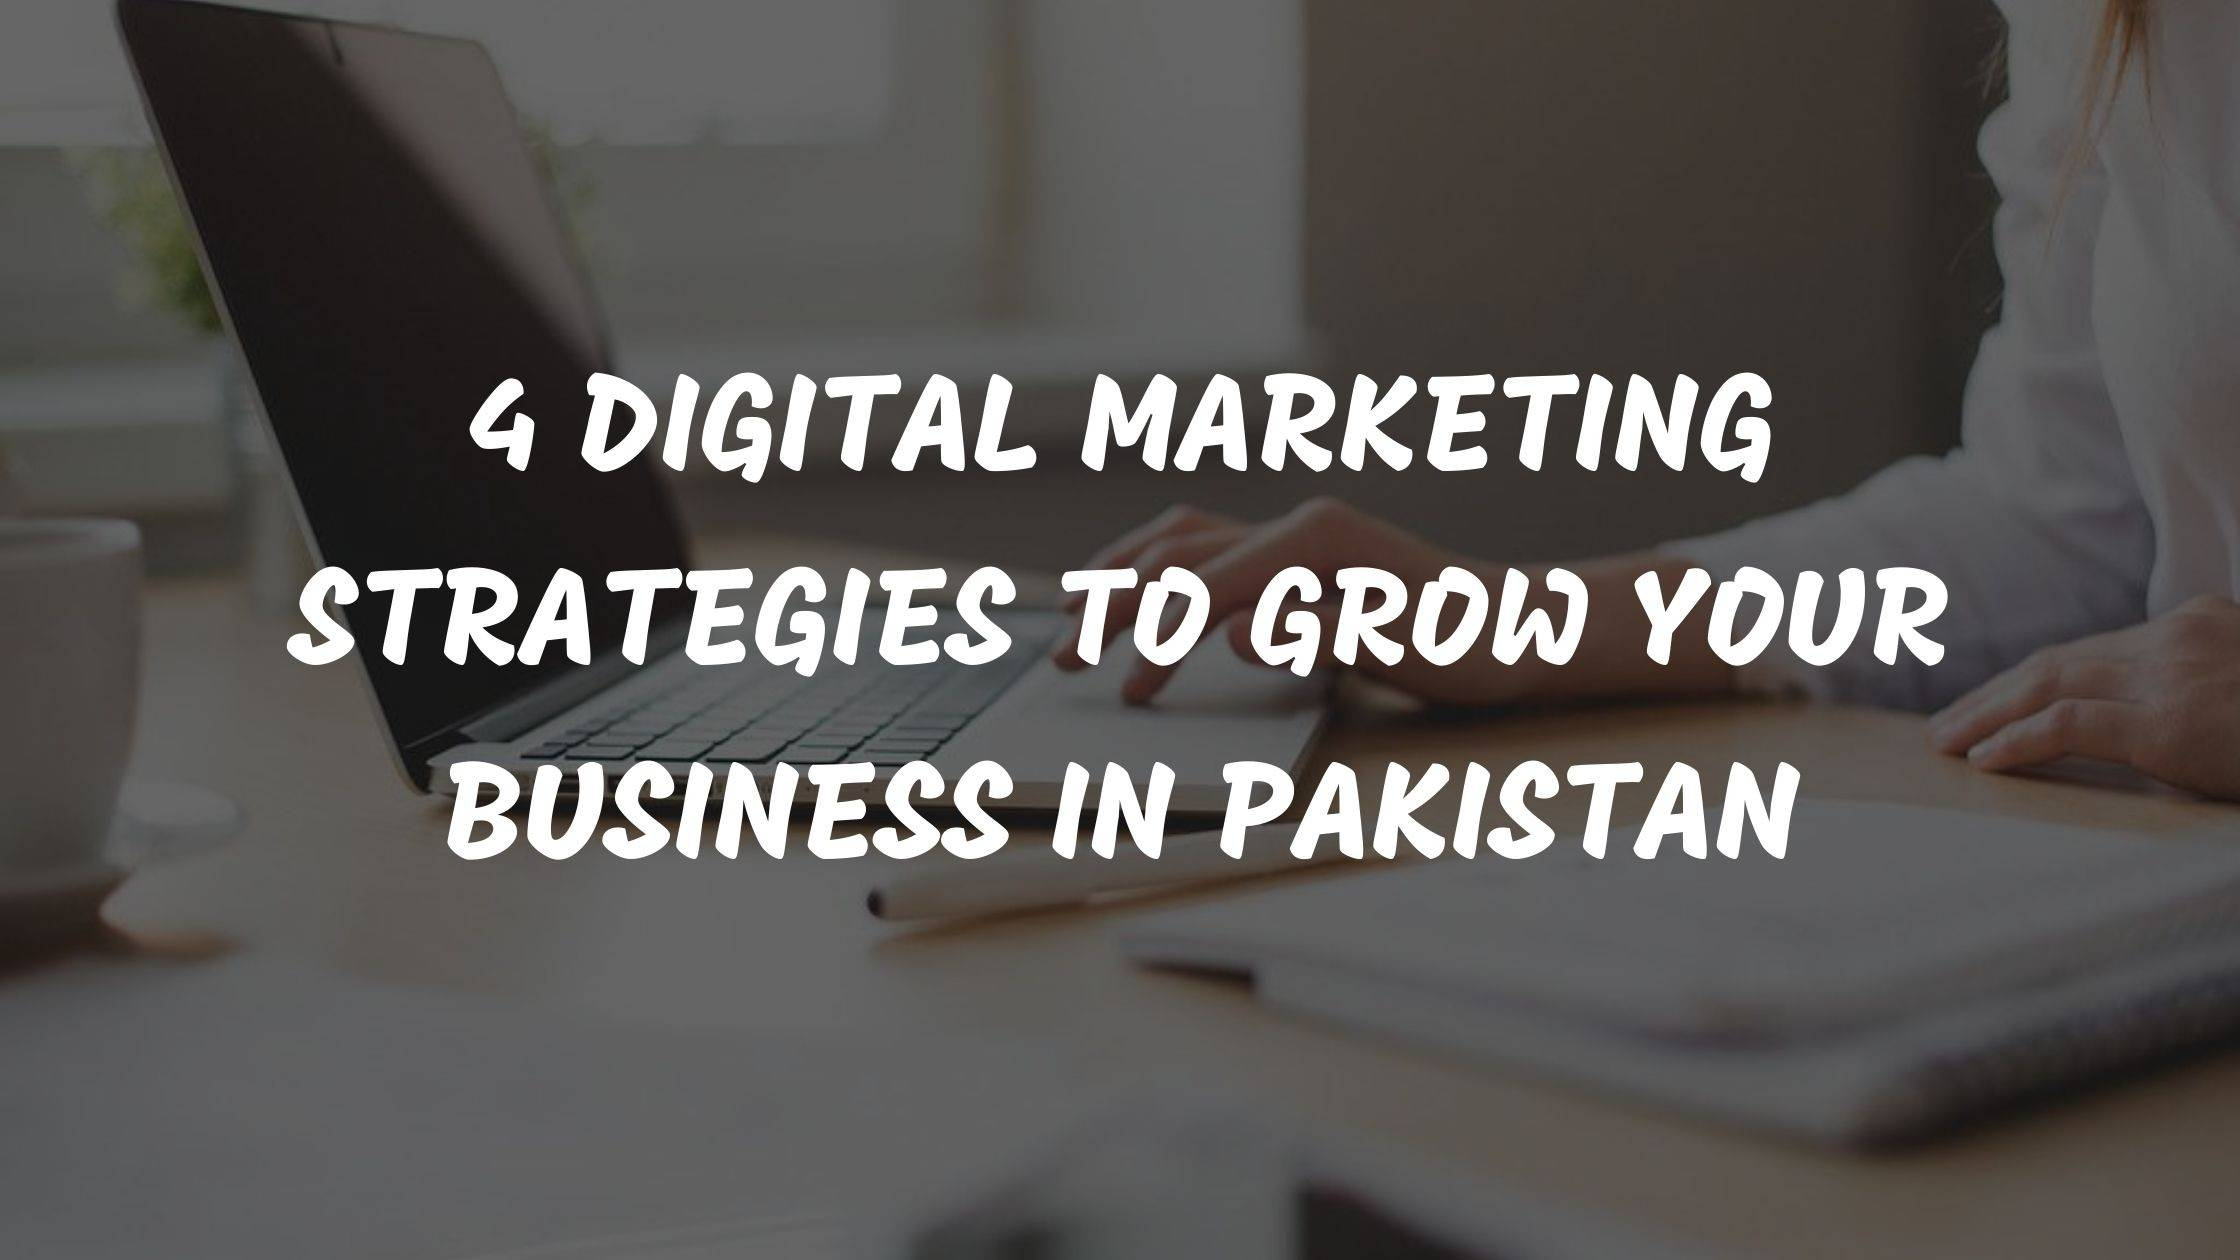 4 Digital Marketing Strategies To Grow Your Business In Pakistan